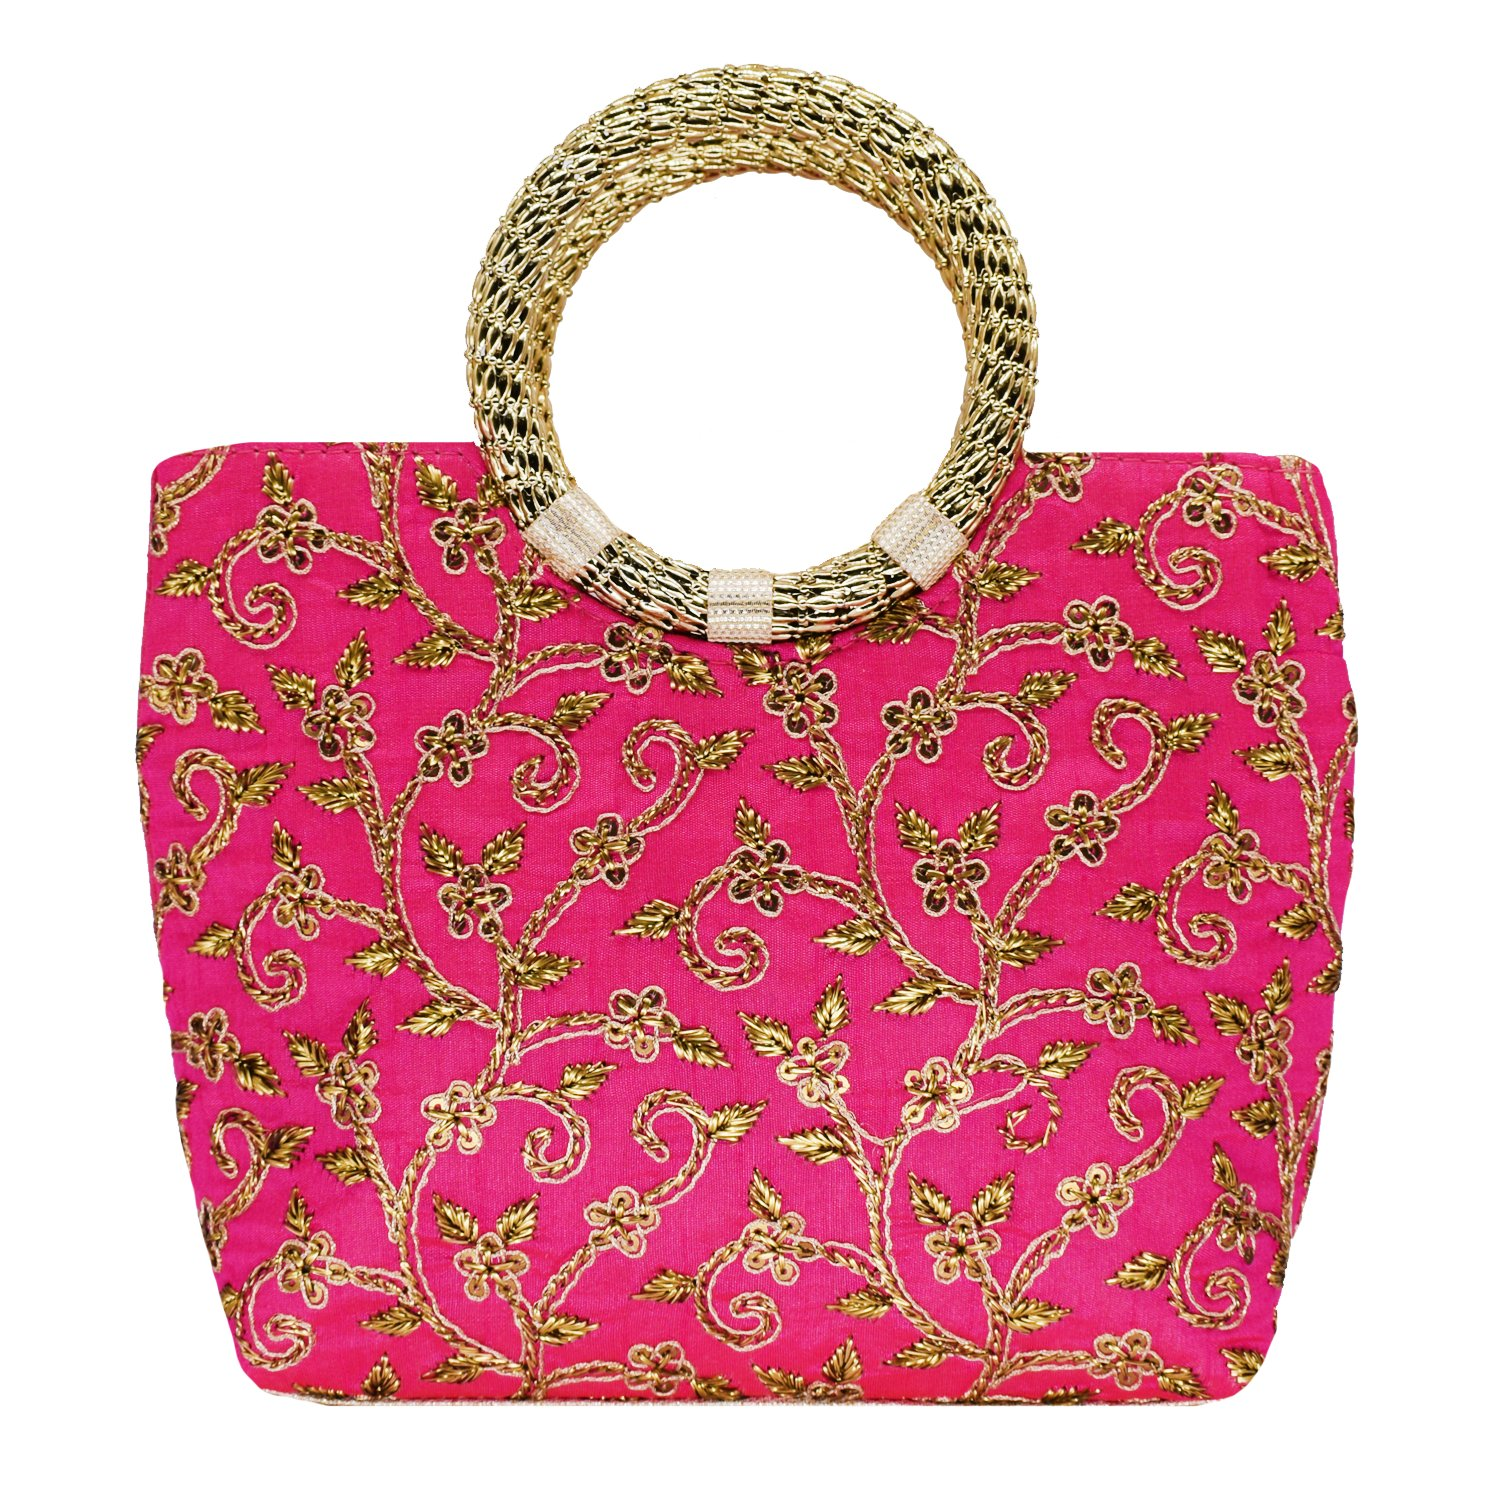 Ethnic Silk Hand Bag with Embroidery Work (Pink) - Bagaholics Gift